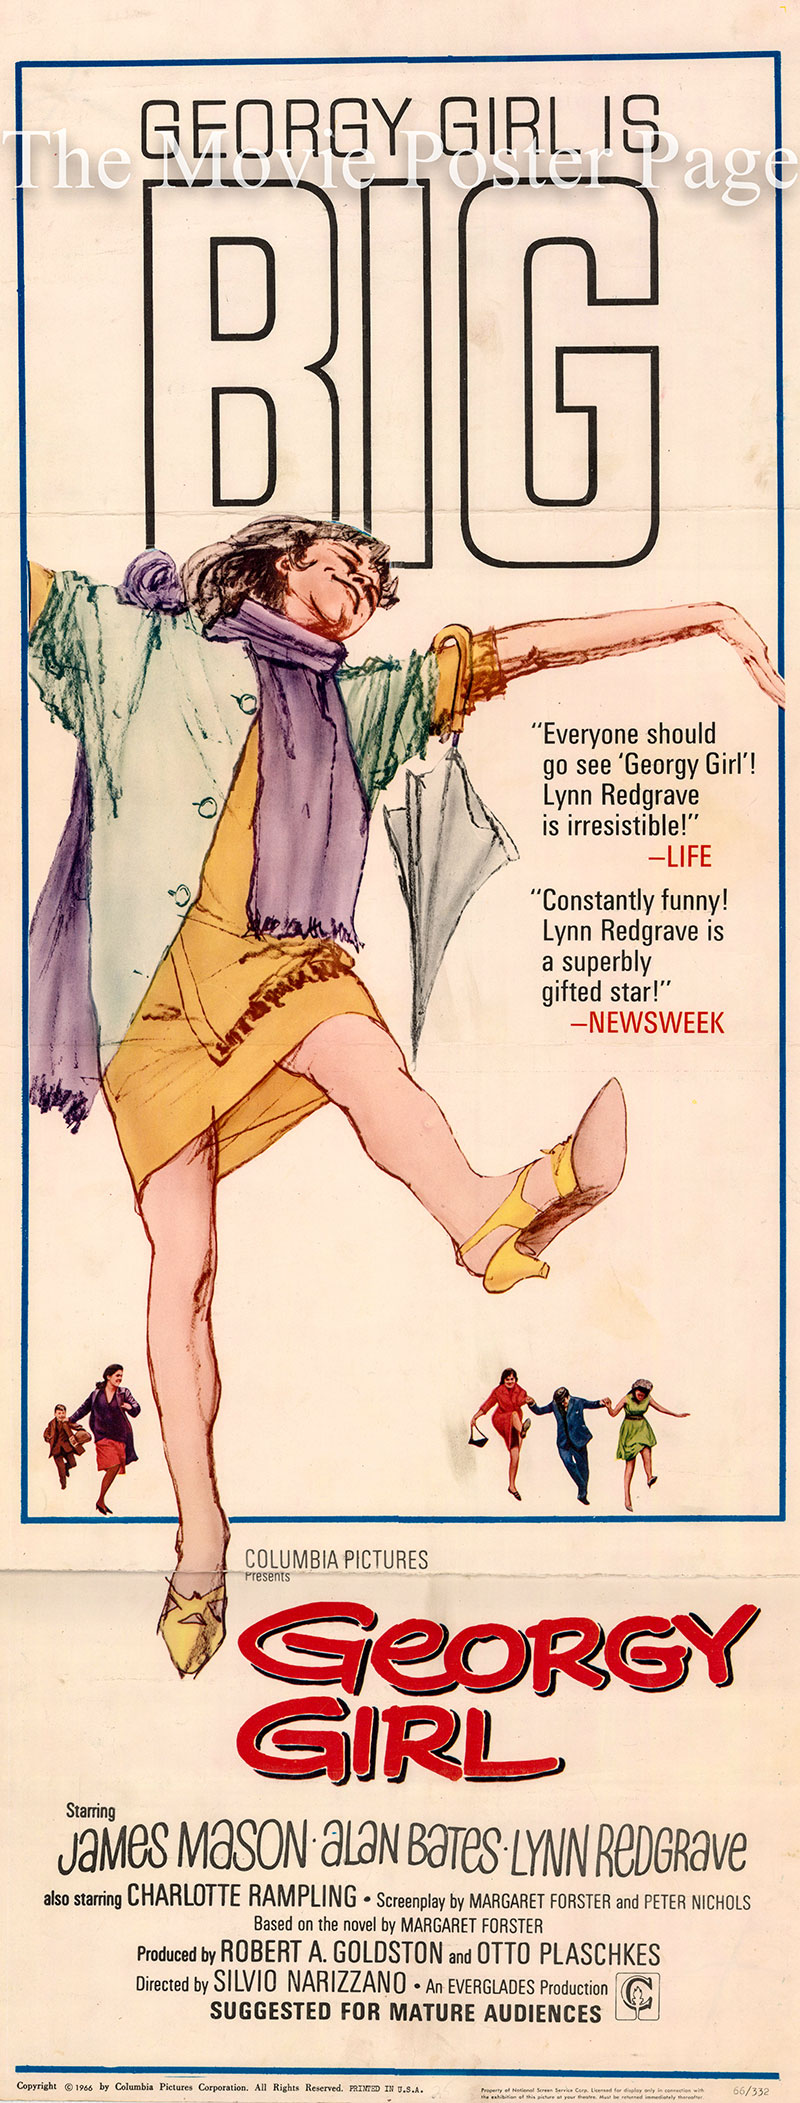 Pictured is a US insert poster for the 1966 Sylvio Narizzano film Georgy Girl starring Lynn Redgrave.